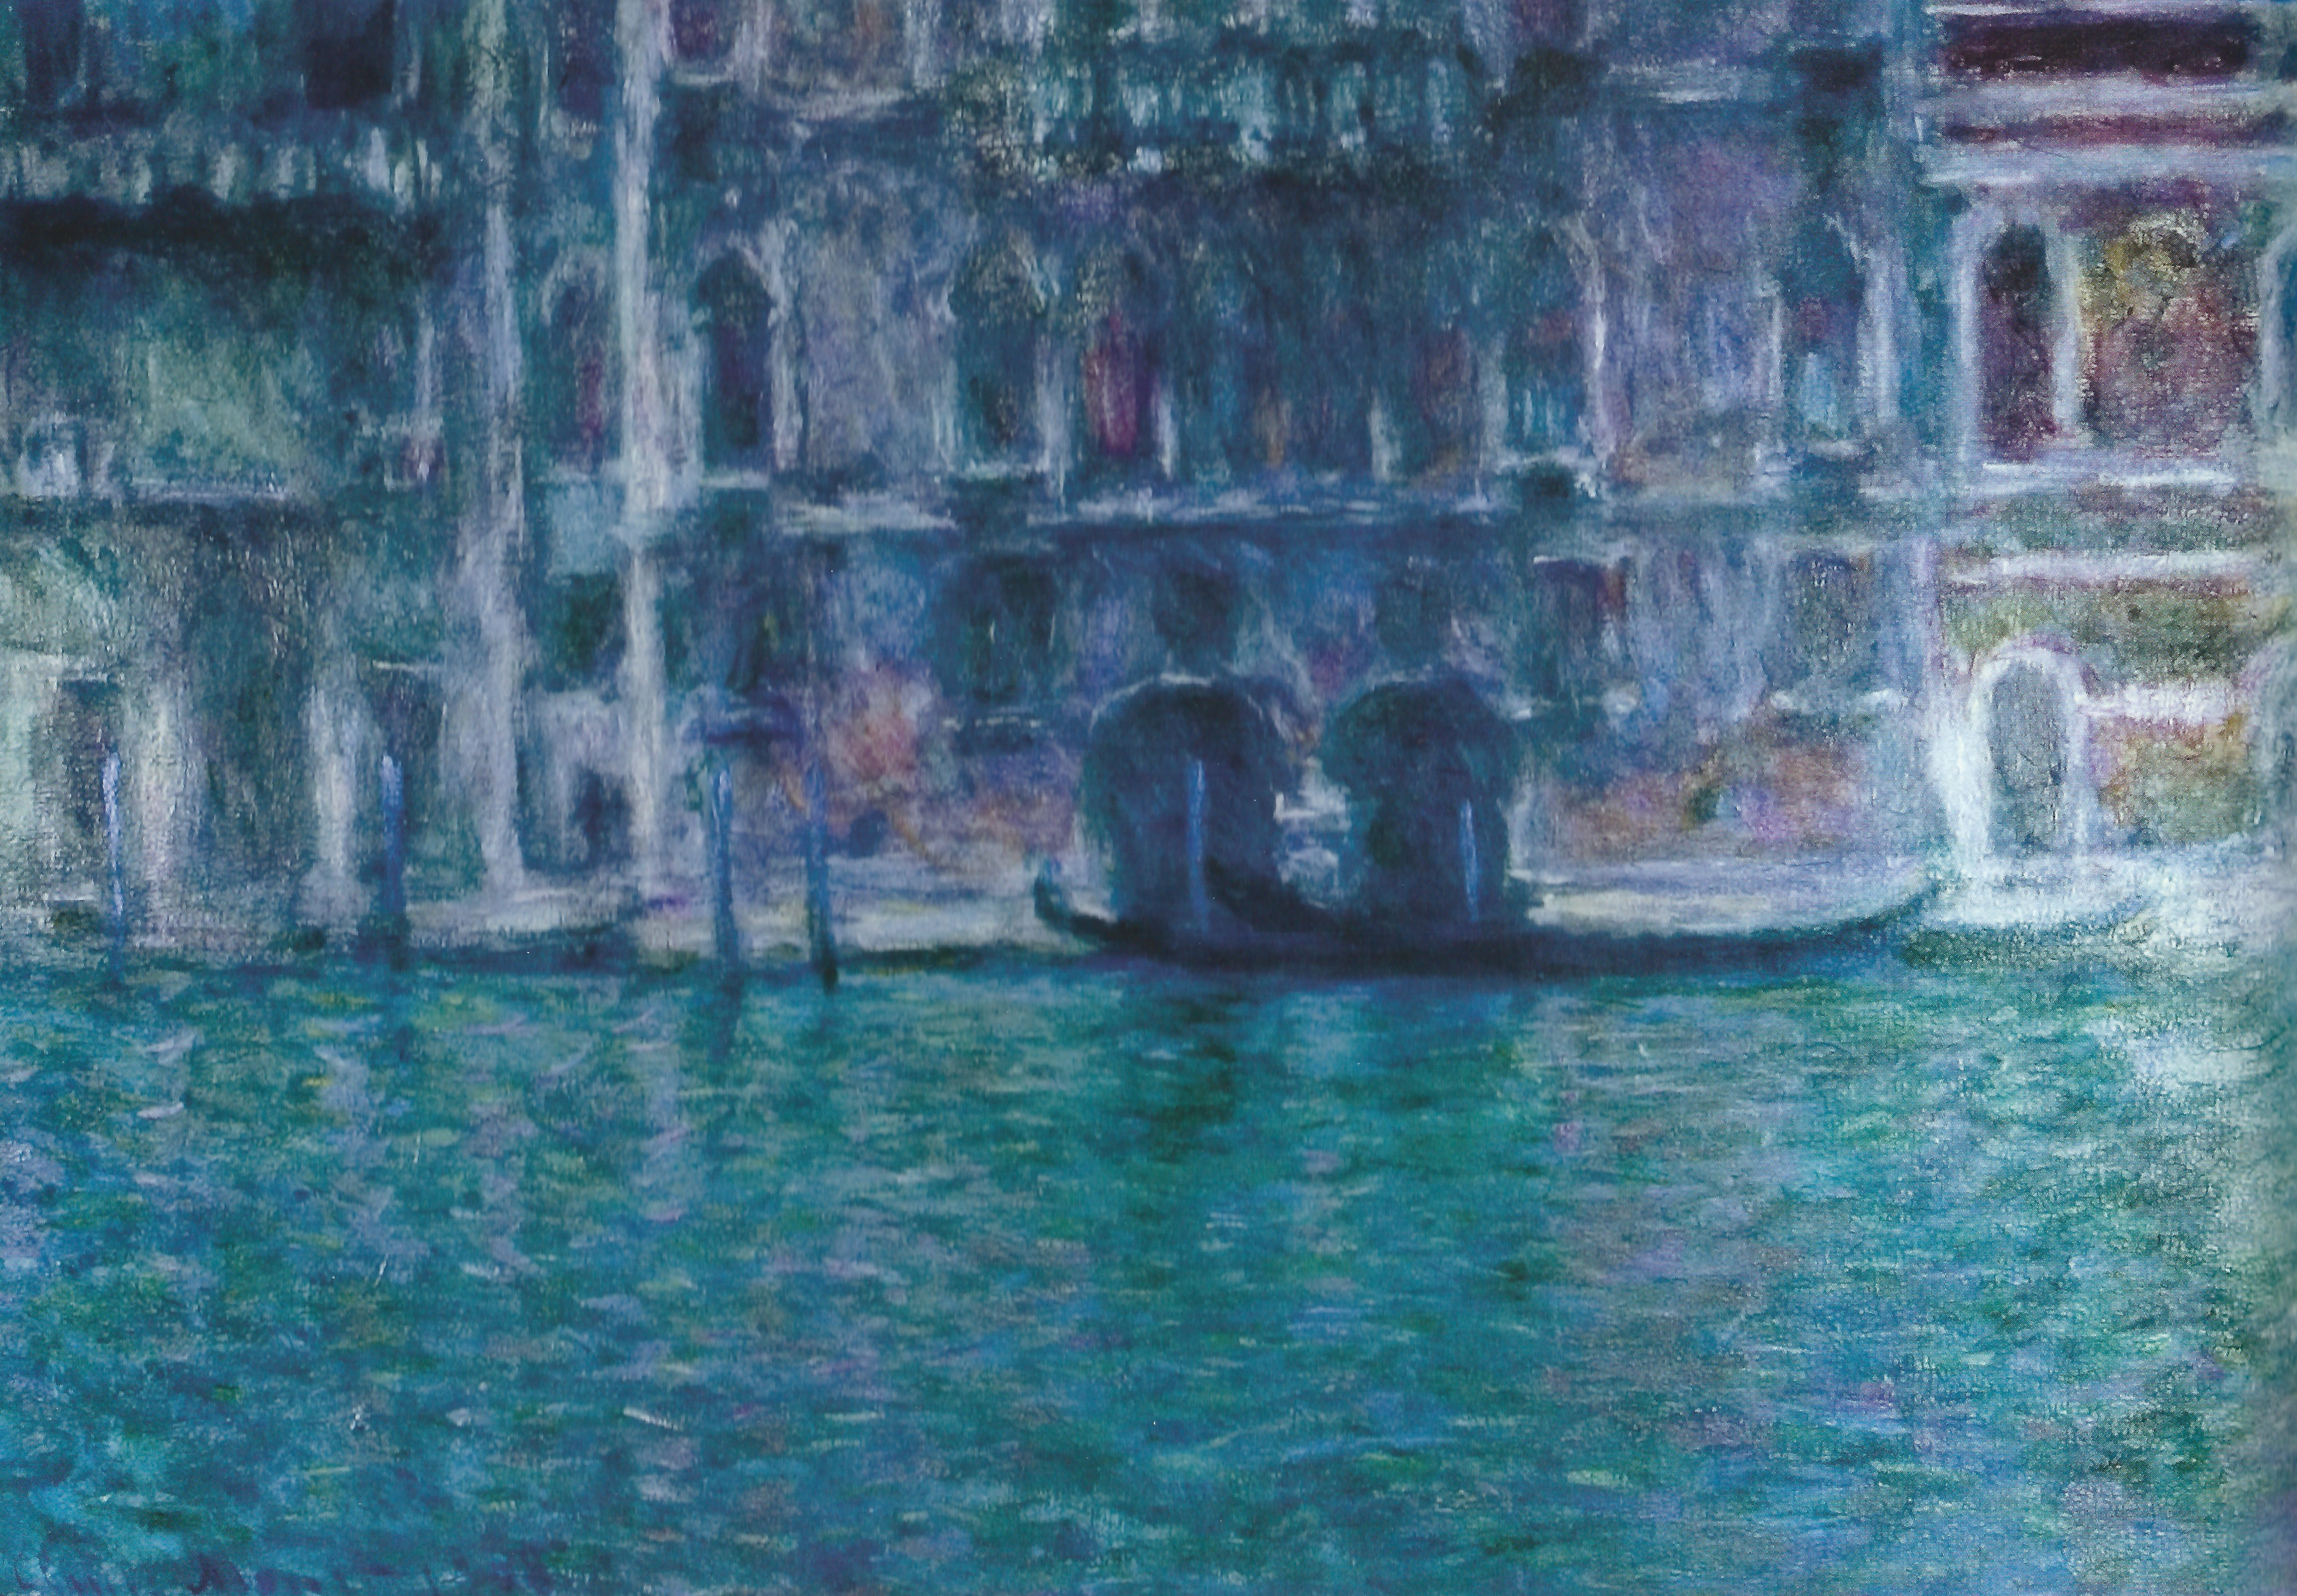 monet palazzo da mula Palazzo da mula at venice by claude monet is a 100% hand-painted oil painting reproduction on canvas painted by one of our professional artists.